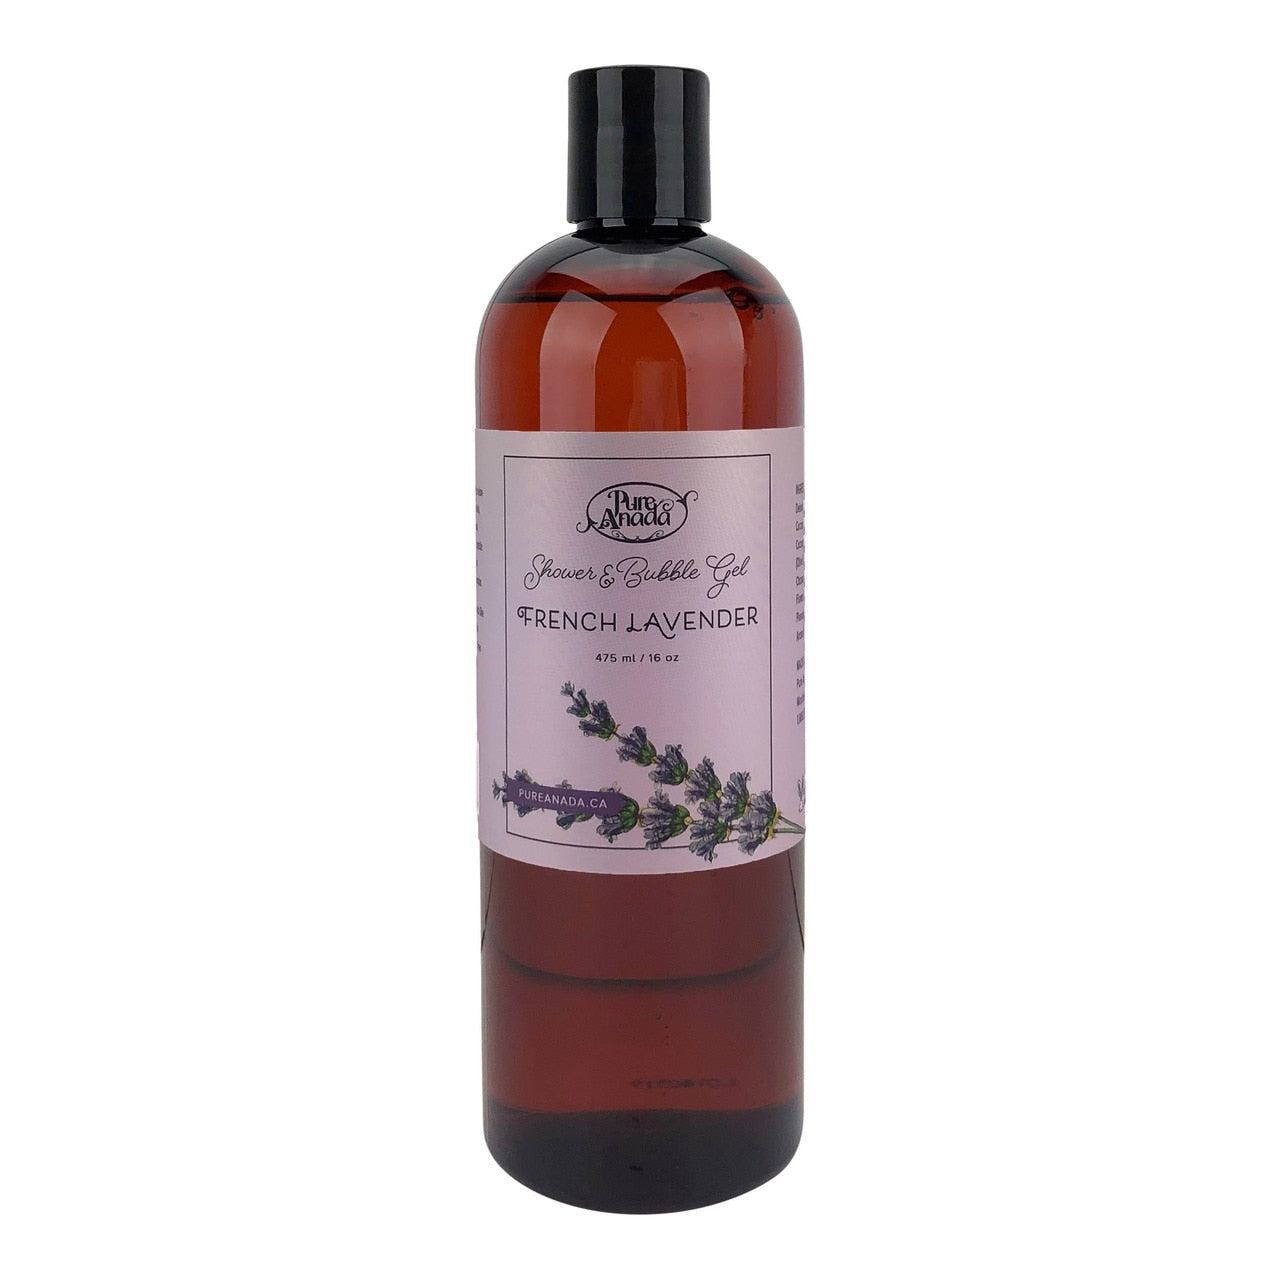 Shower & Bubble Gel - French Lavender